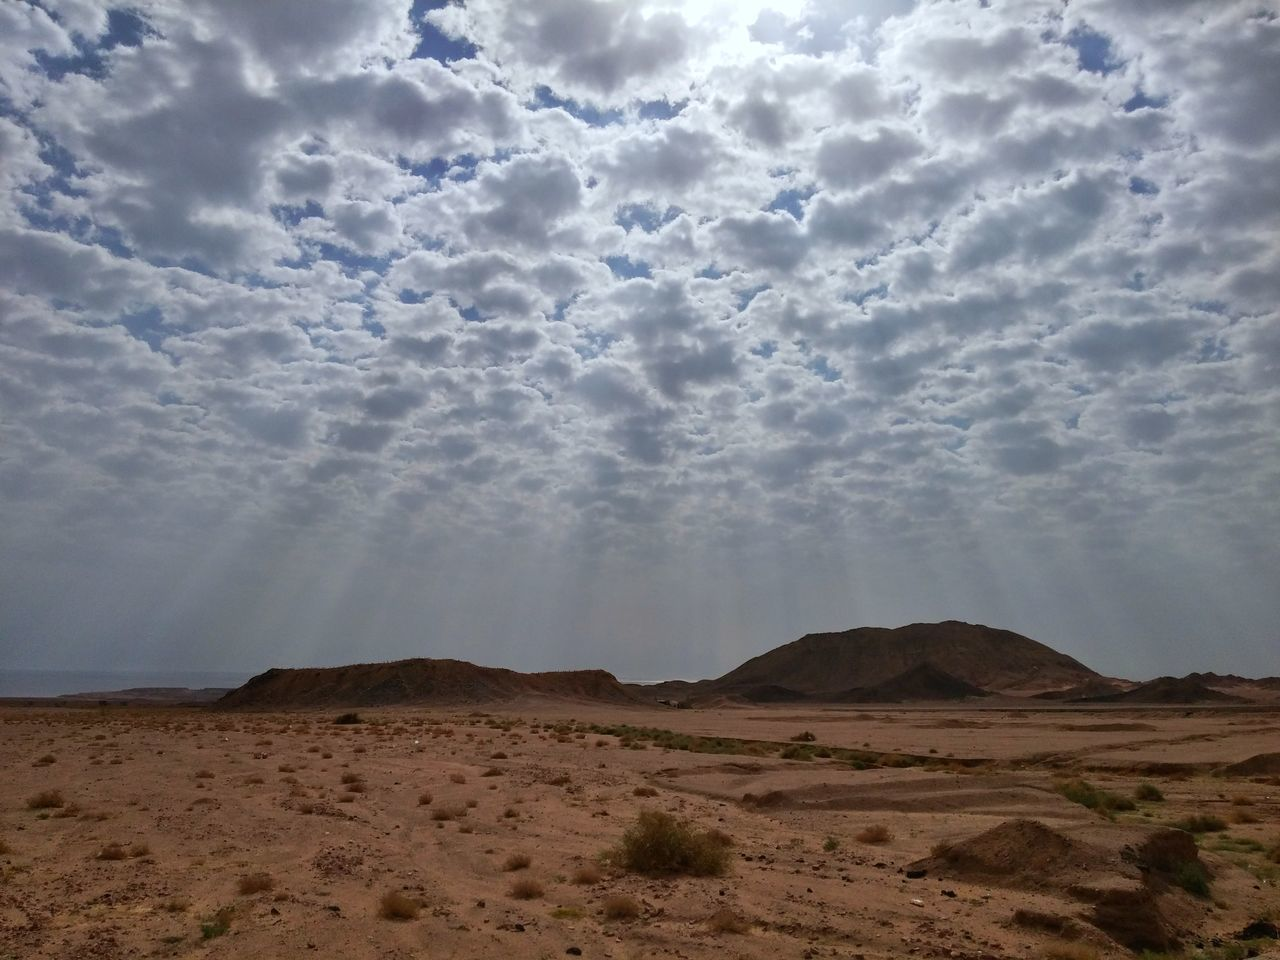 landscape, nature, no people, sky, cloud - sky, scenics, tranquil scene, arid climate, day, desert, tranquility, sand, beauty in nature, outdoors